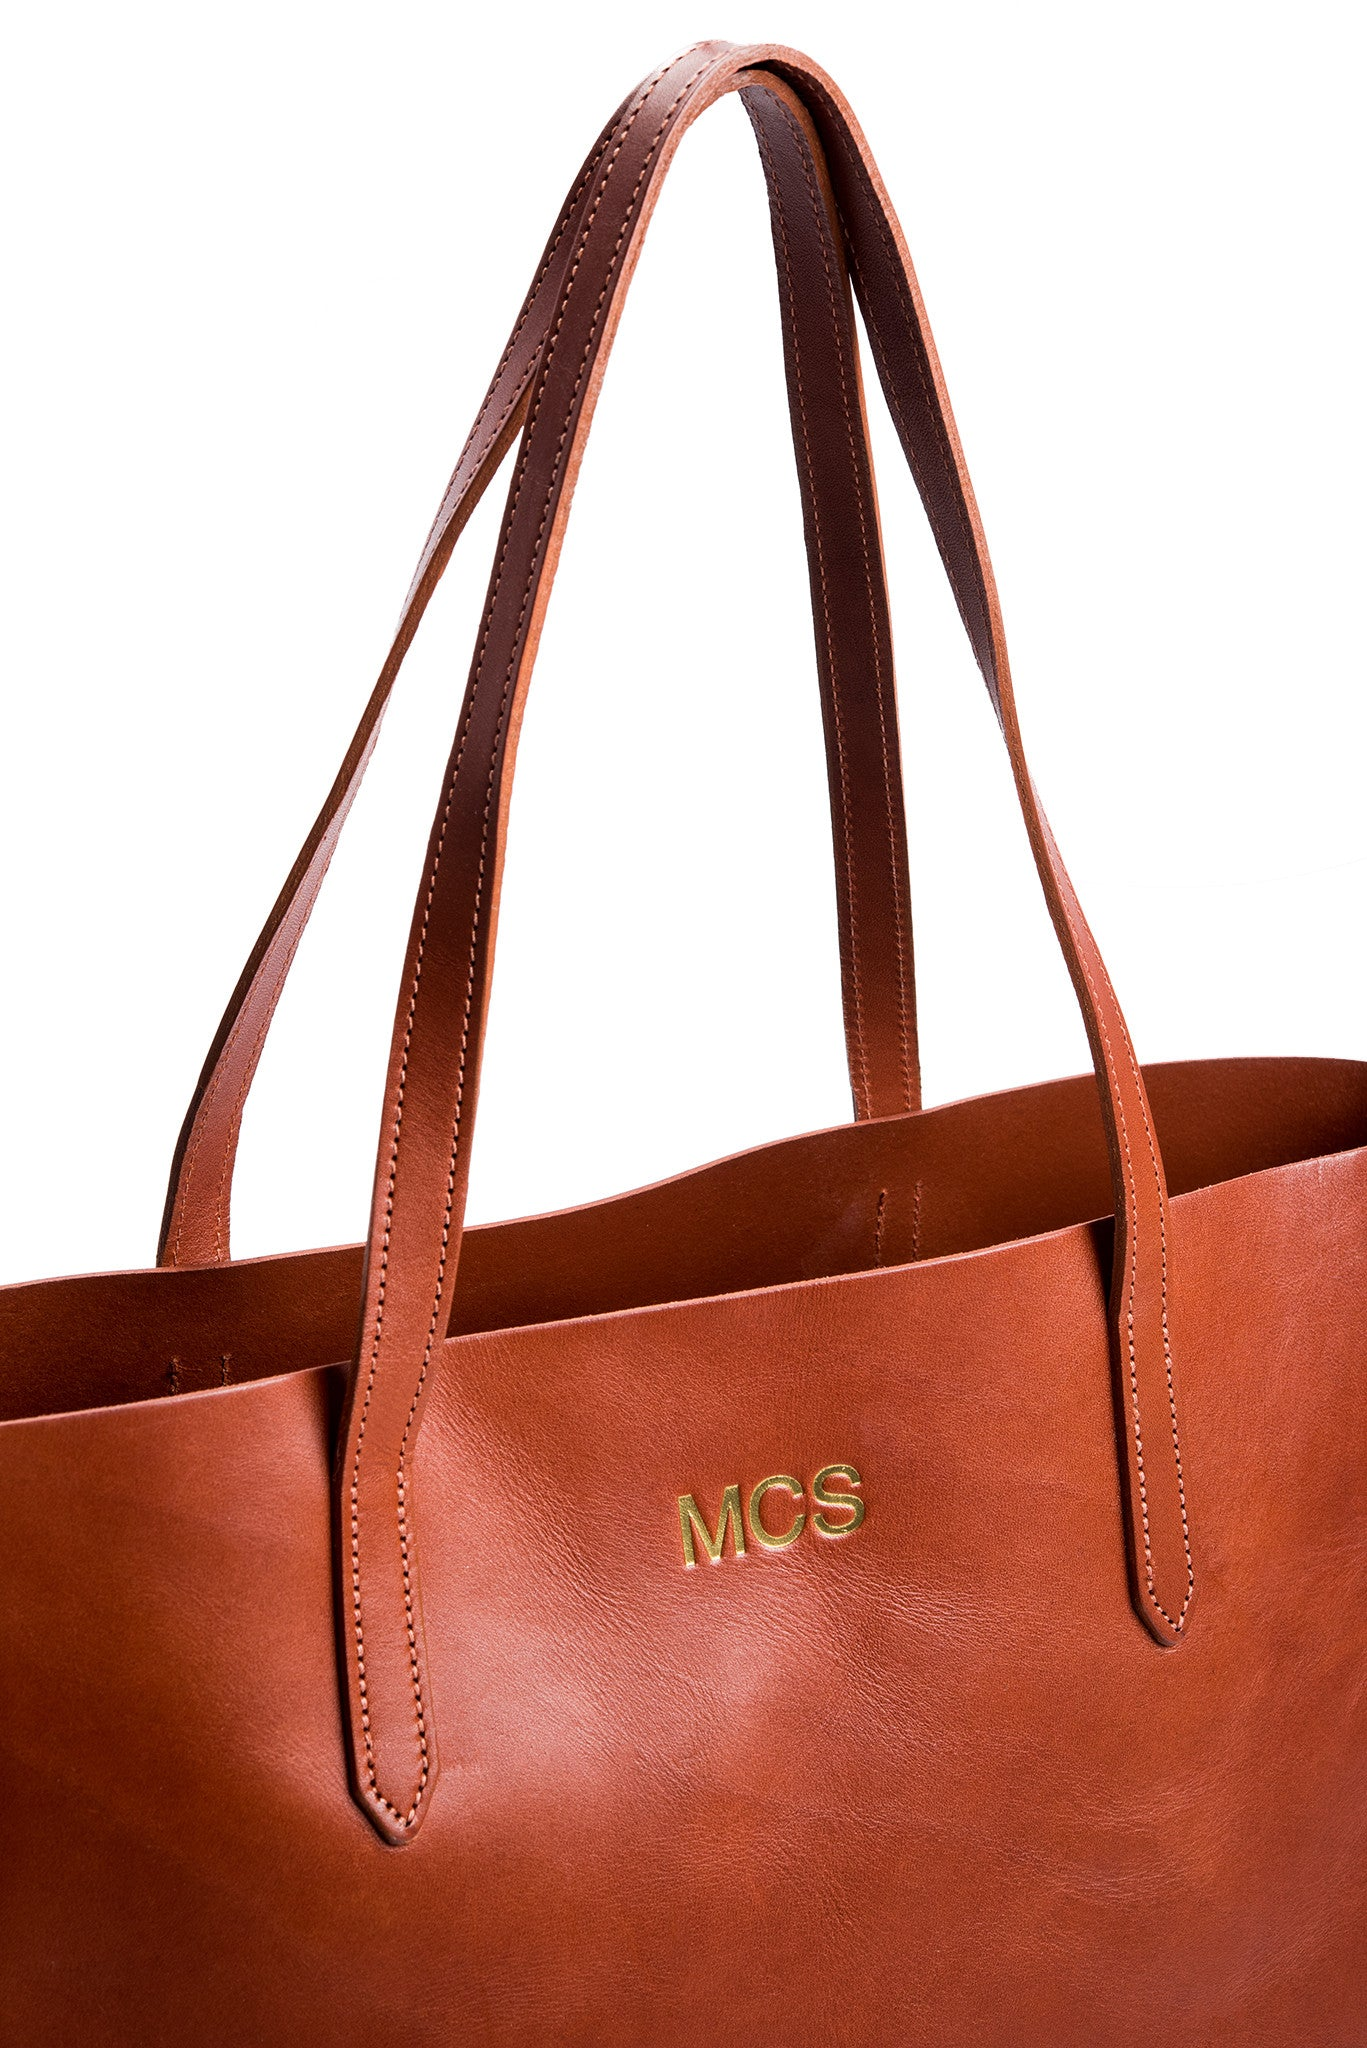 FOTO | The Highland Leather Tote - Cognac - a genuine leather tote in chestnut brown vegetable tanned leather can be personalized with gold foil initials, making it the perfect personalized gift.